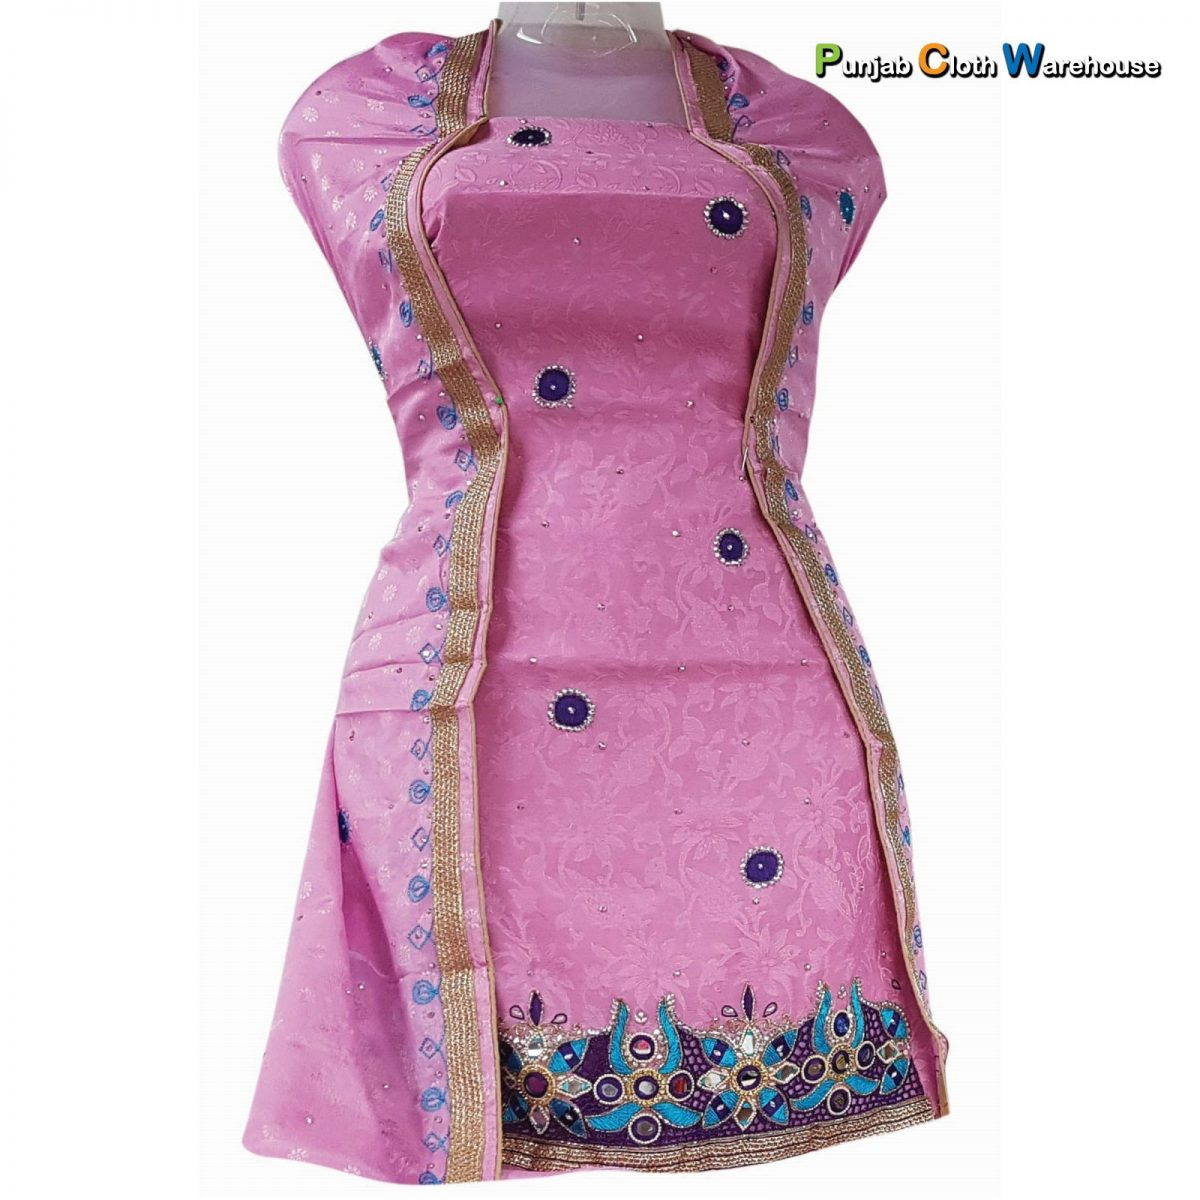 Ladies Suits - Cut Piece - Punjab Cloth Warehouse, Surrey (25)